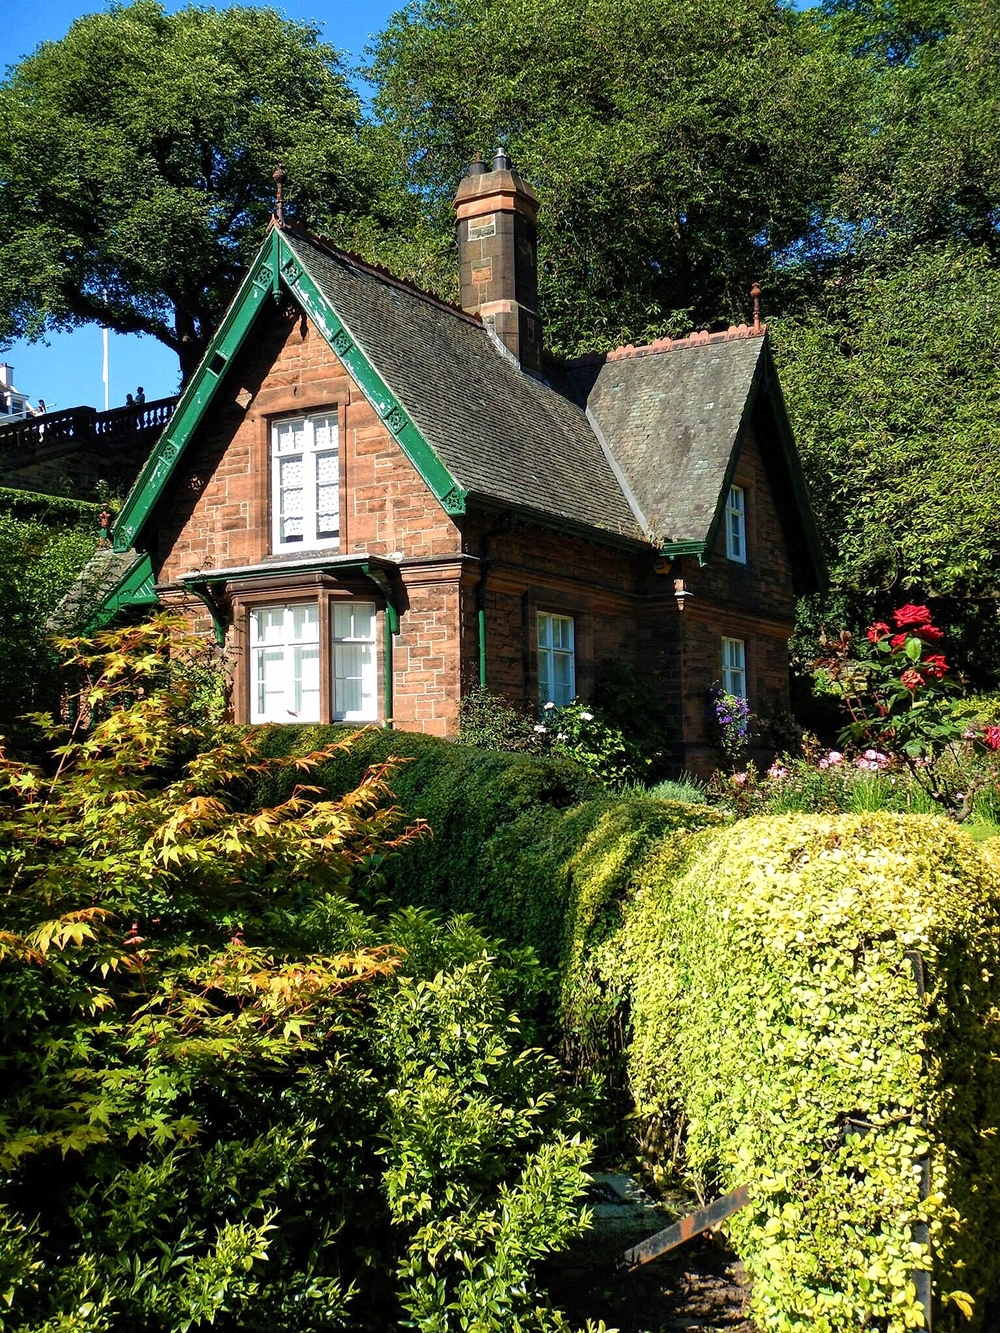 Built by Robert Morham in 1886, the Gardener's Cottage in West Princes Street Gardens is a quaint asymmetrical single story house with a gabled attic. Who wouldn't want to stay there?